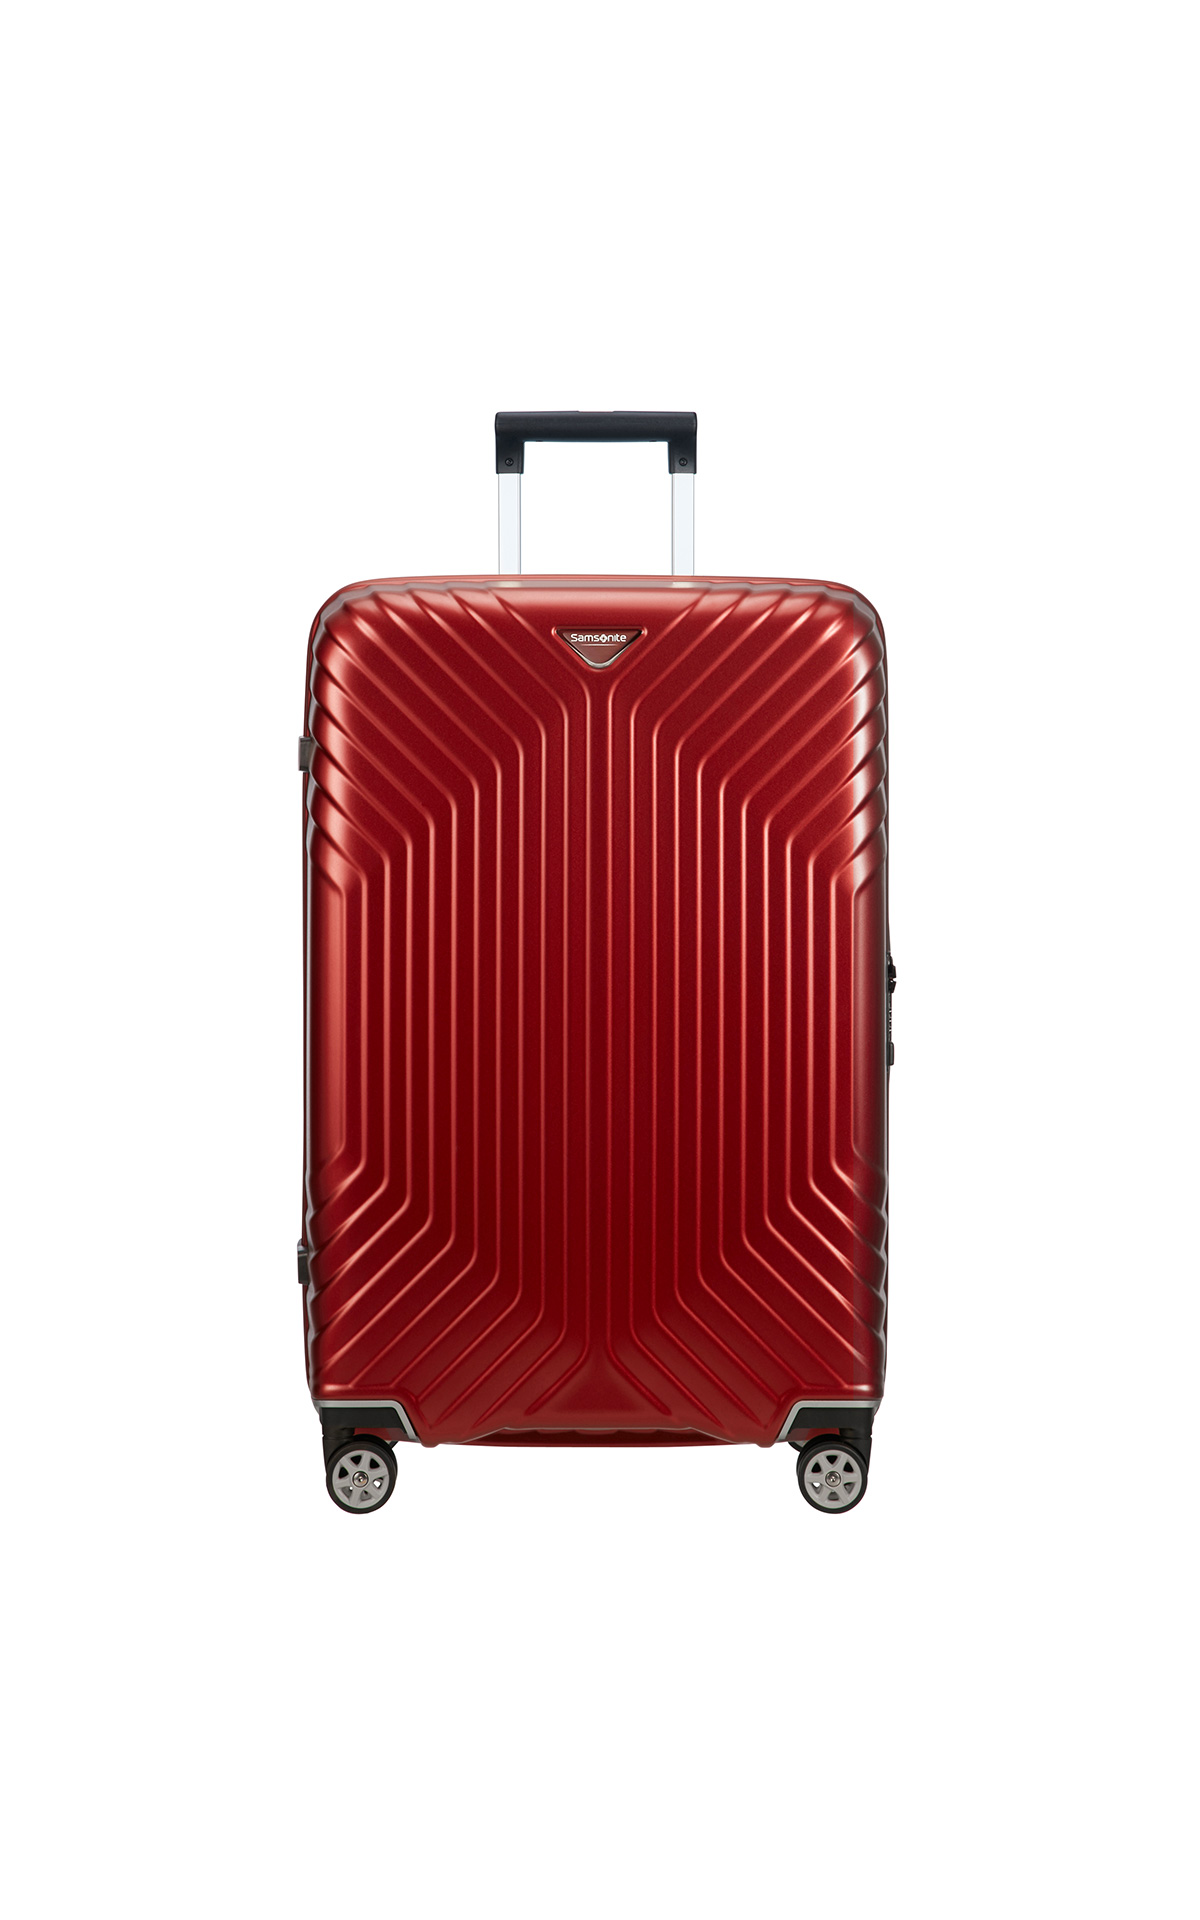 Samsonite red suitcase